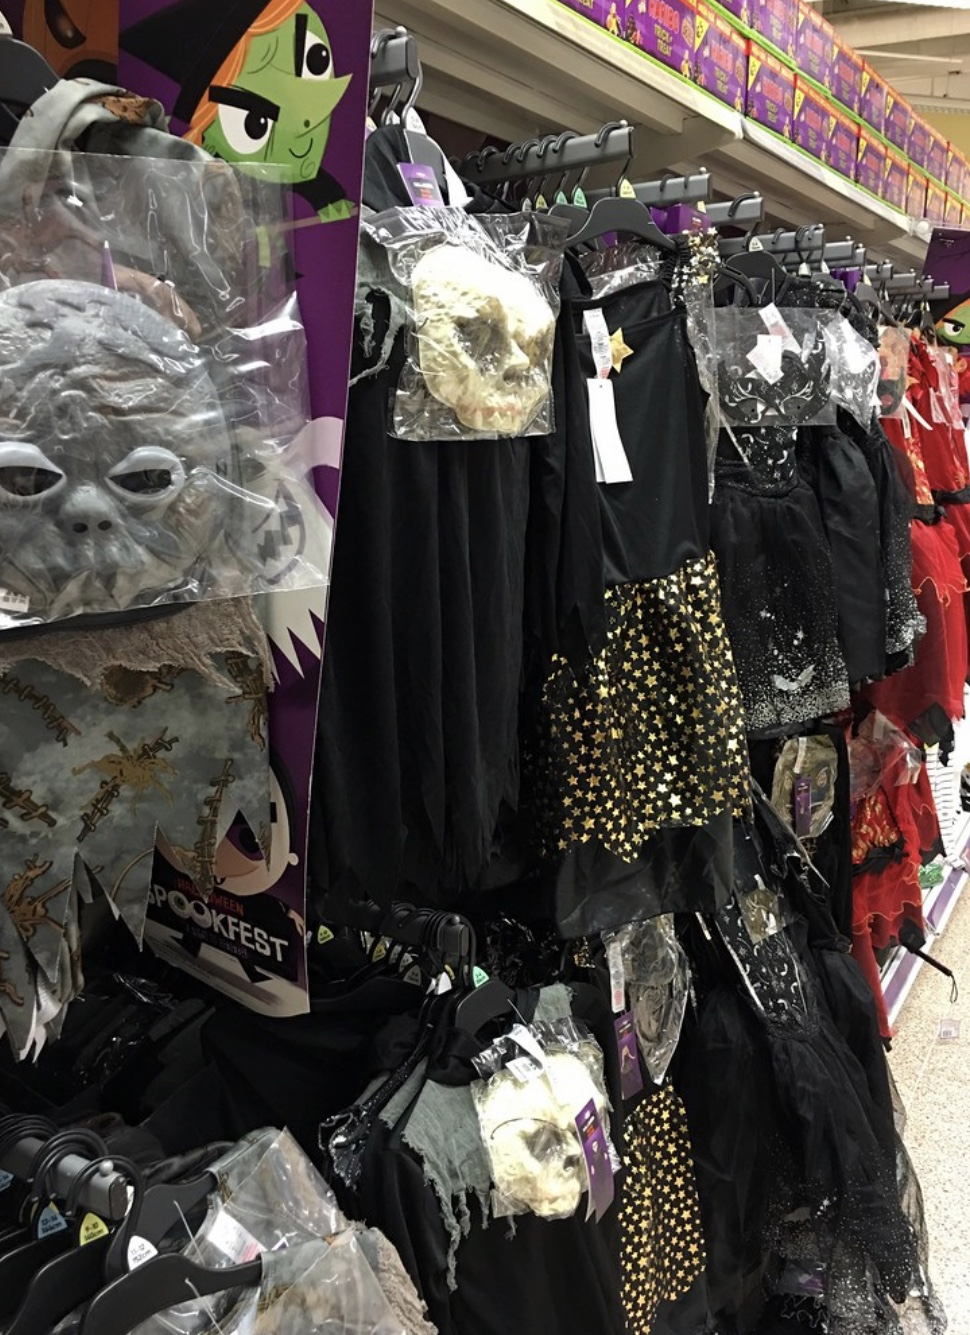 Halloween is tomorrow, and many students may struggle finding a costume for school that adheres to the dress code guidelines.